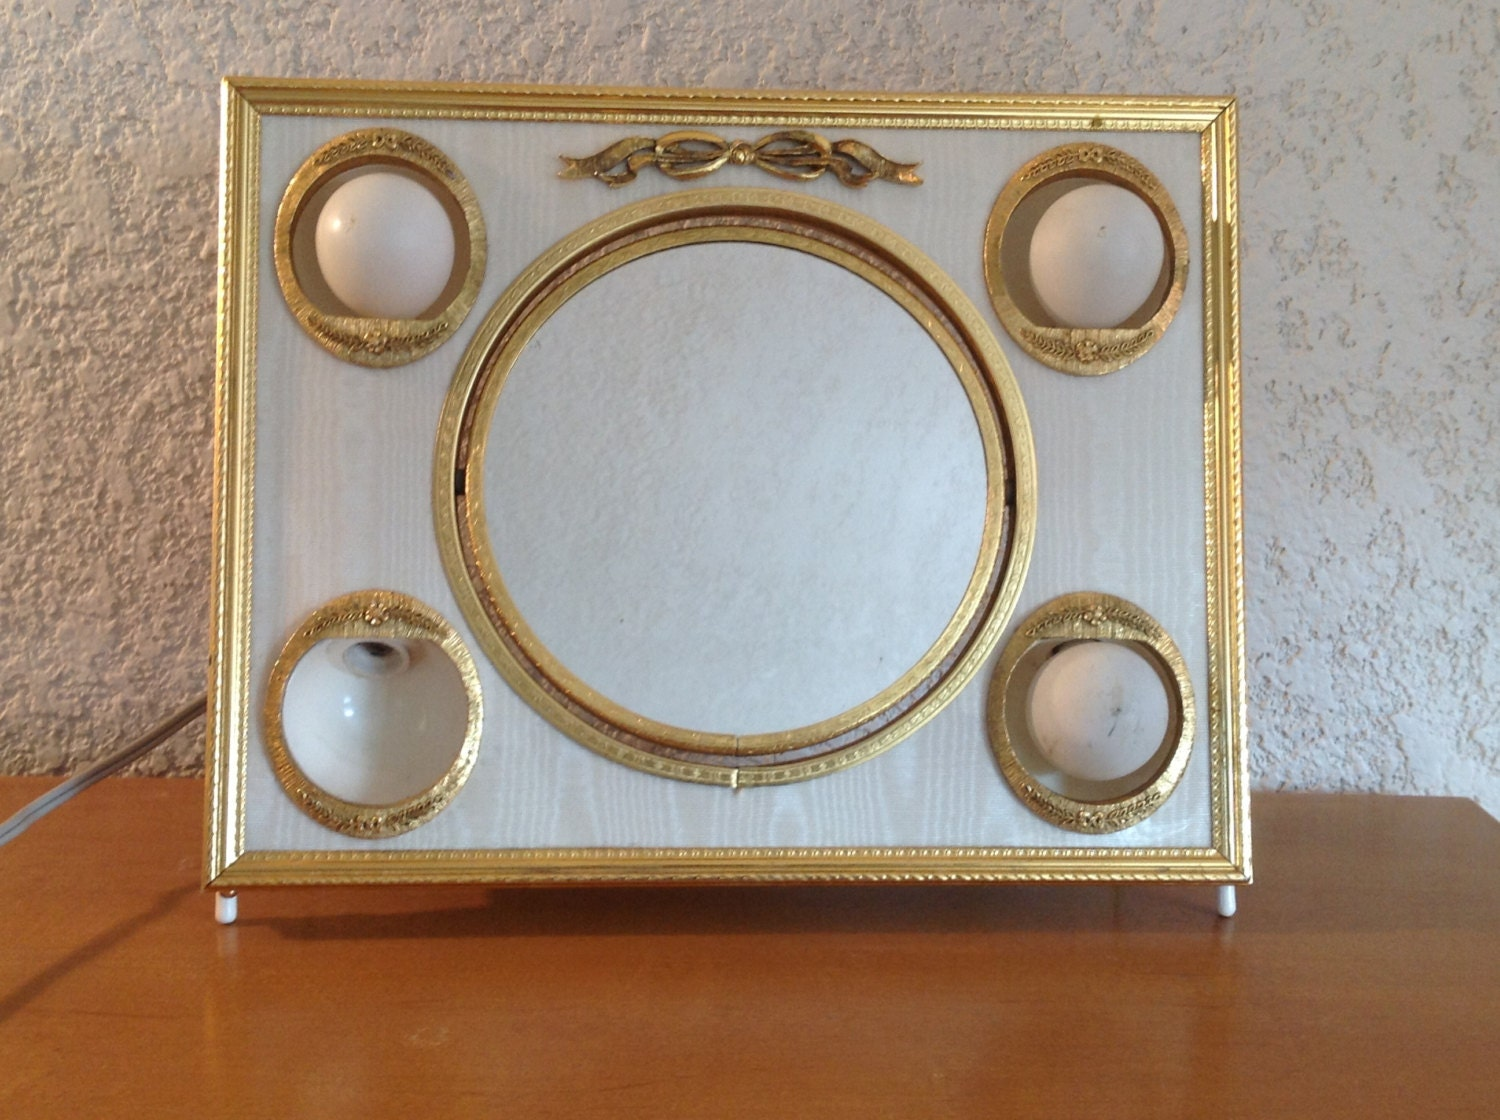 Vintage Vanity Mirror With Lights : Vintage Matson Vanity Mirror with lighted frame. Ornate gold